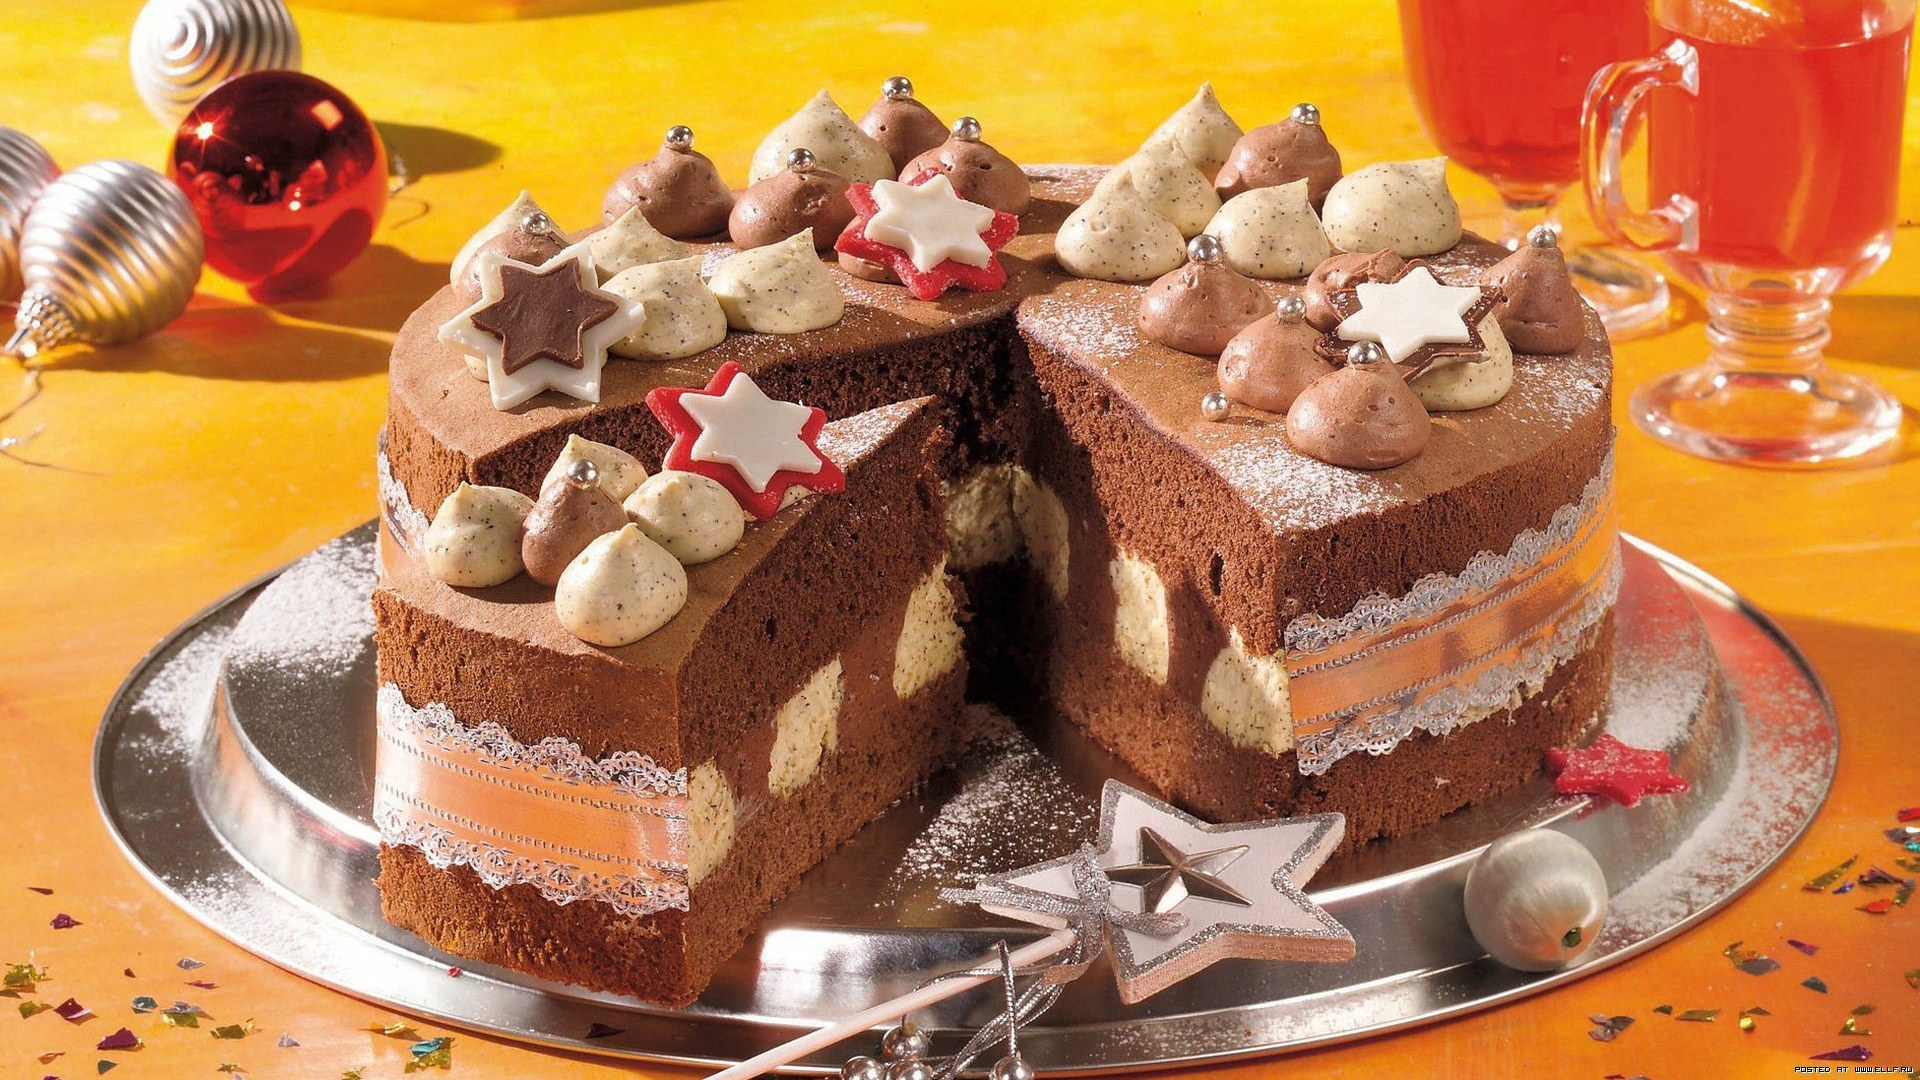 24126 download wallpaper Holidays, Food, New Year, Dessert, Christmas, Xmas screensavers and pictures for free